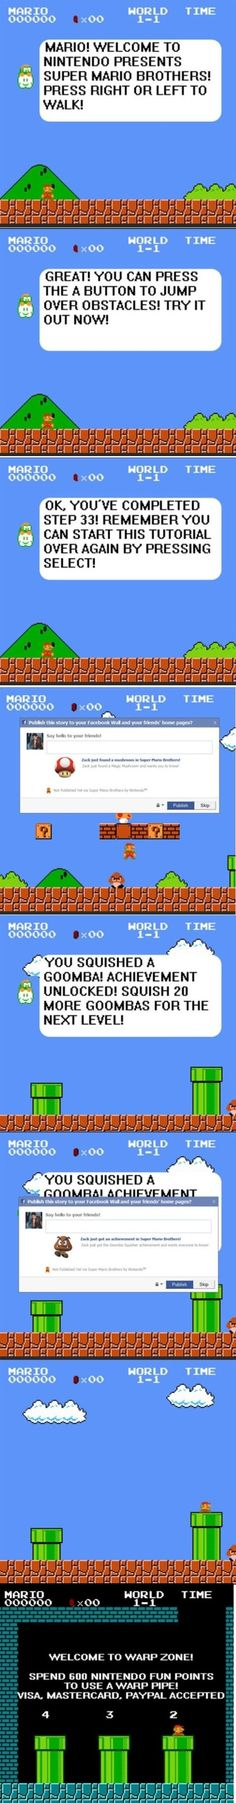 If Mario was created today